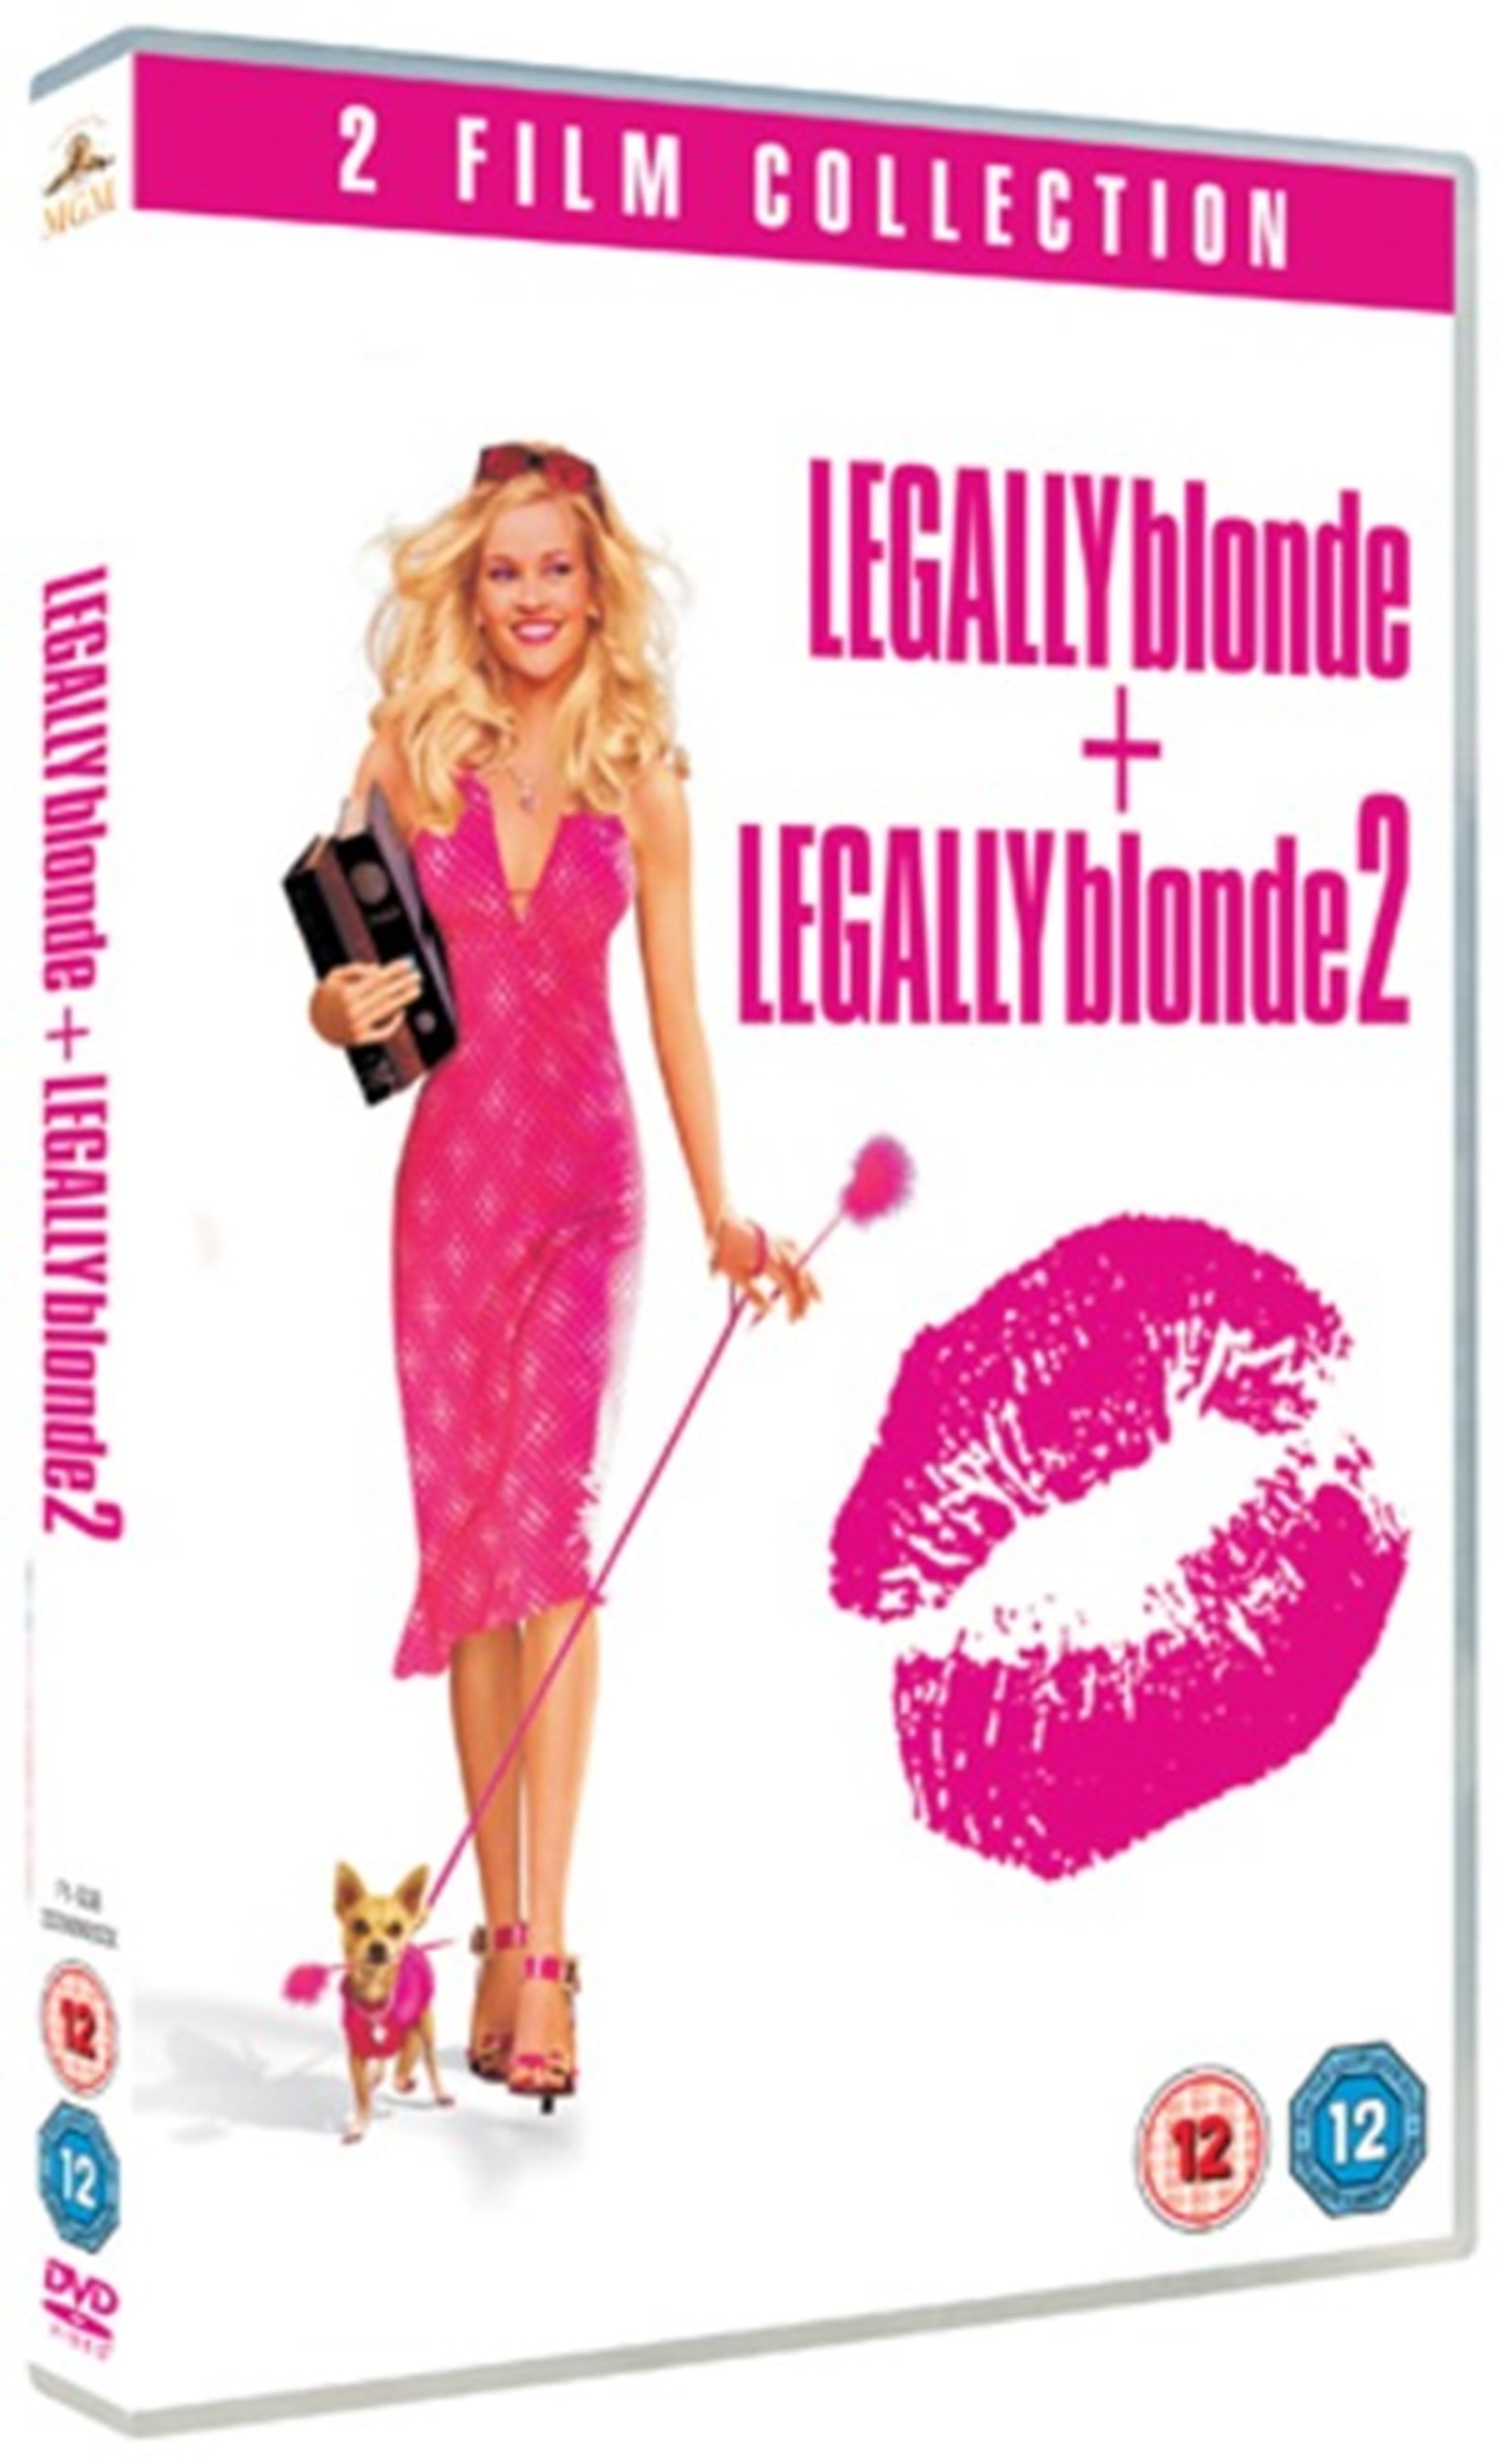 Legally Blonde/Legally Blonde 2